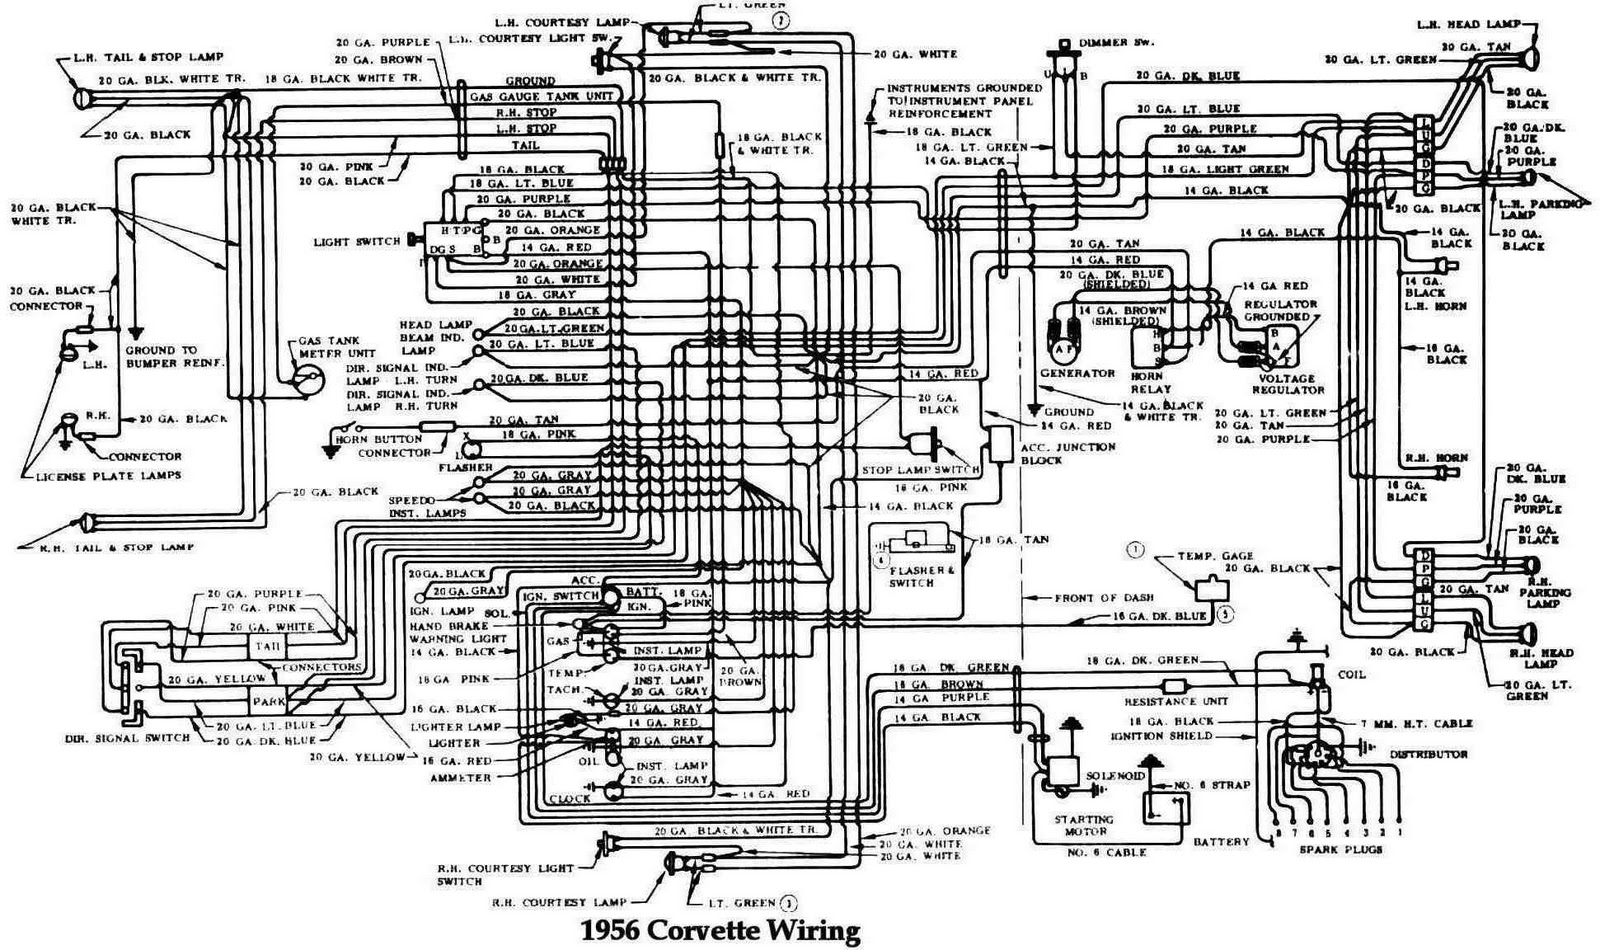 Inspiring 1966 gmc truck wiring diagram gallery best image wire charming 1956 ford f100 wiring diagram ideas electrical and wiring cheapraybanclubmaster Choice Image